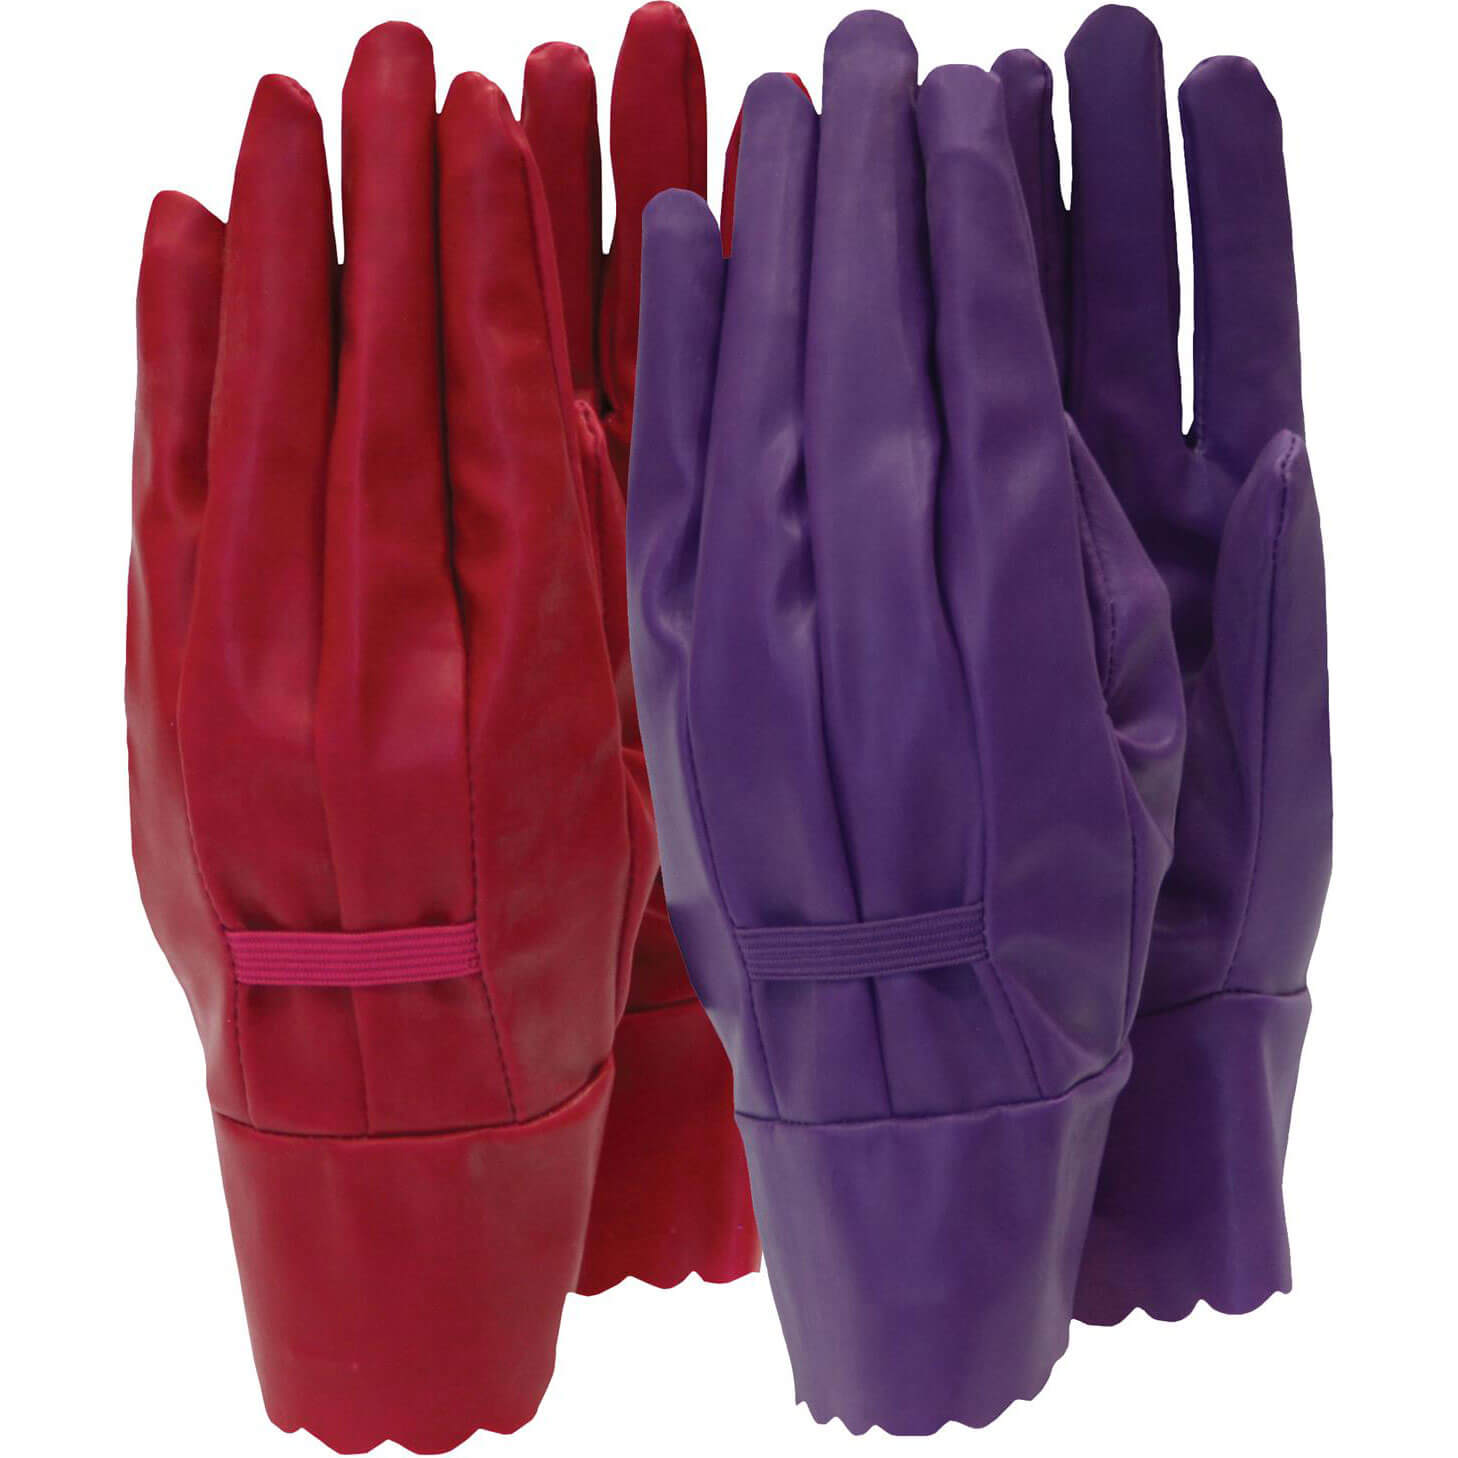 Town & Country Original Aquasure Vinyl Ladies Gloves One Size